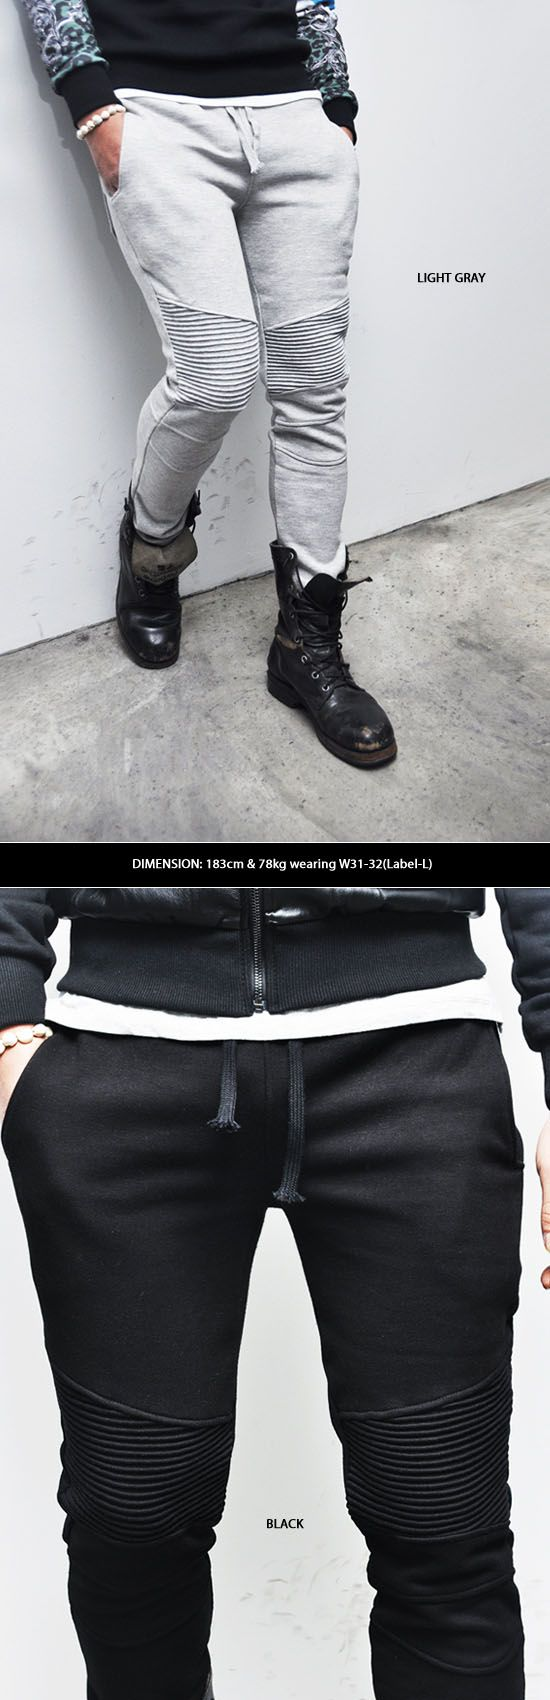 Bottoms :: Sweatpants :: Designer Homme Seaming Slim Biker-Sweatpants 87 - Mens Fashion Clothing For An Attractive Guy Look